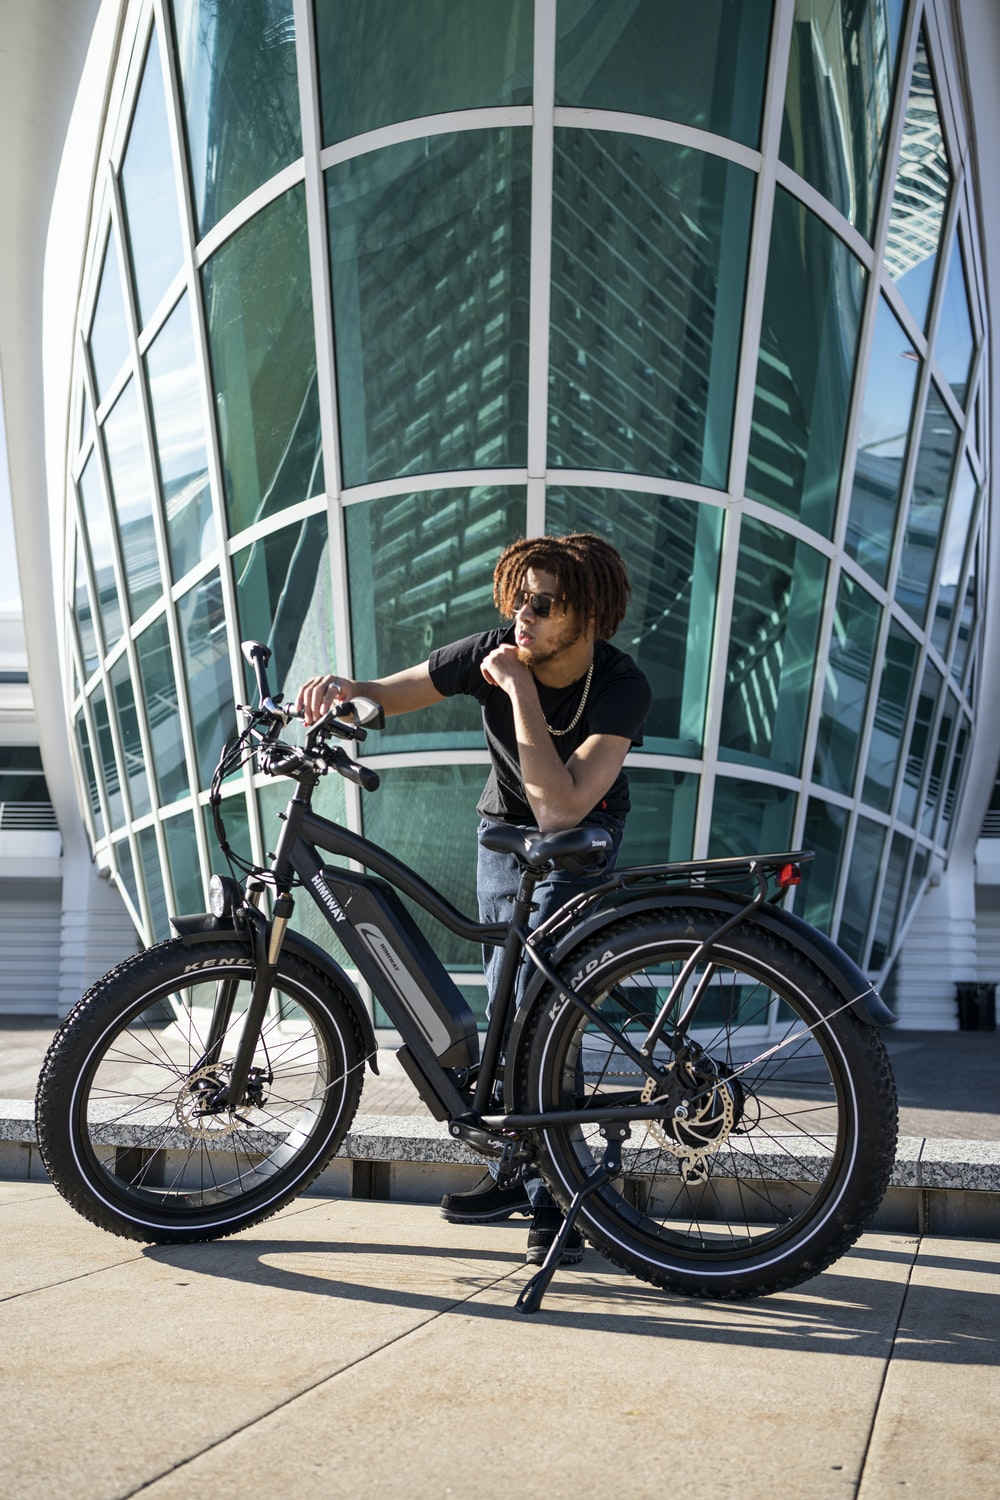 woman in black tank top riding on black bicycle